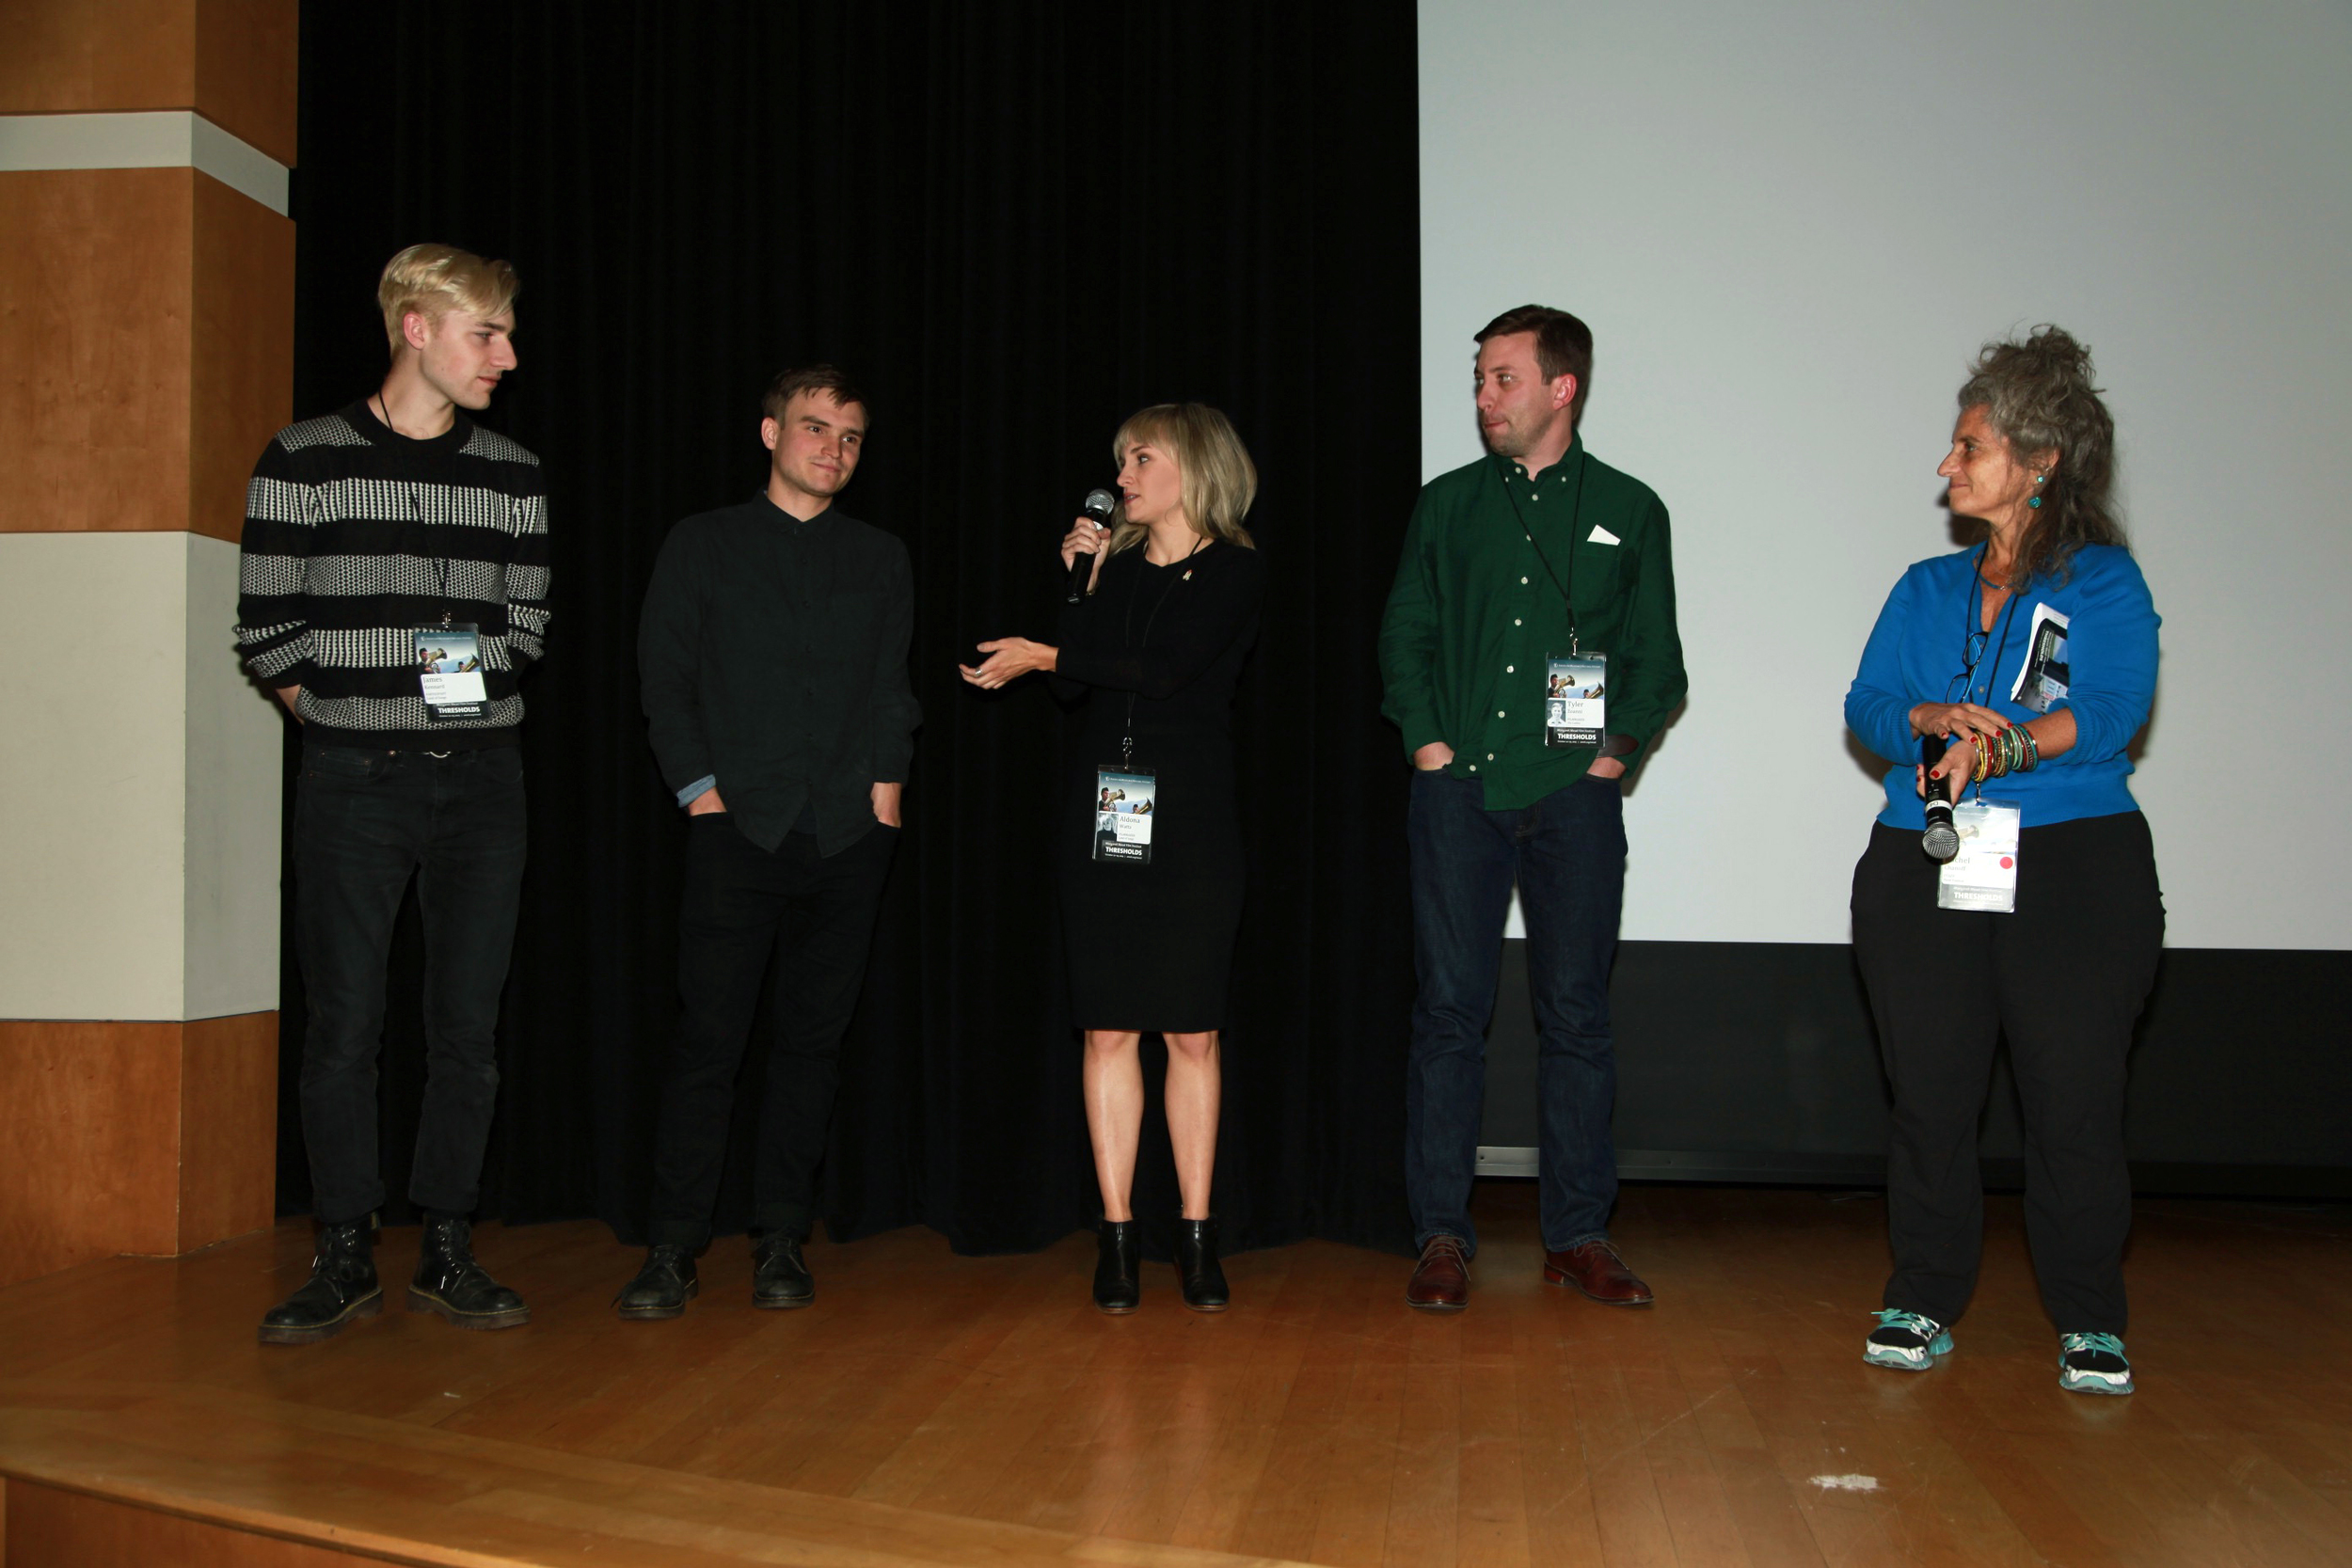 U.S. Premiere at The Margaret Mead Film Festival in New York (October 2015).